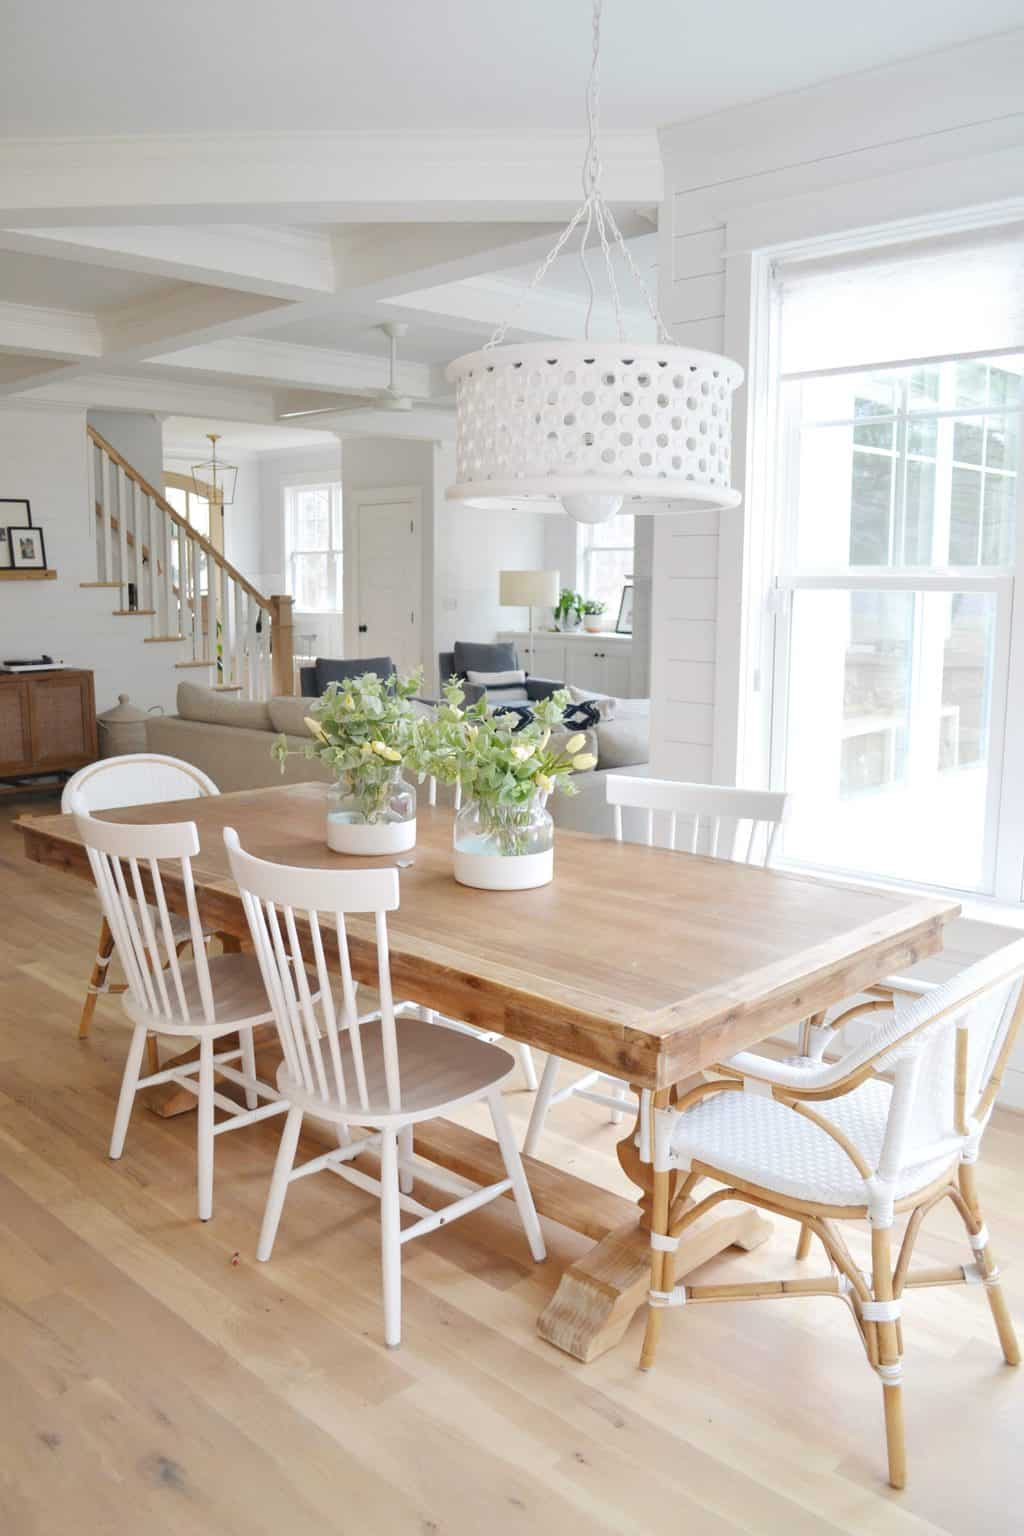 Pier 1 Dining Table Our Bradding